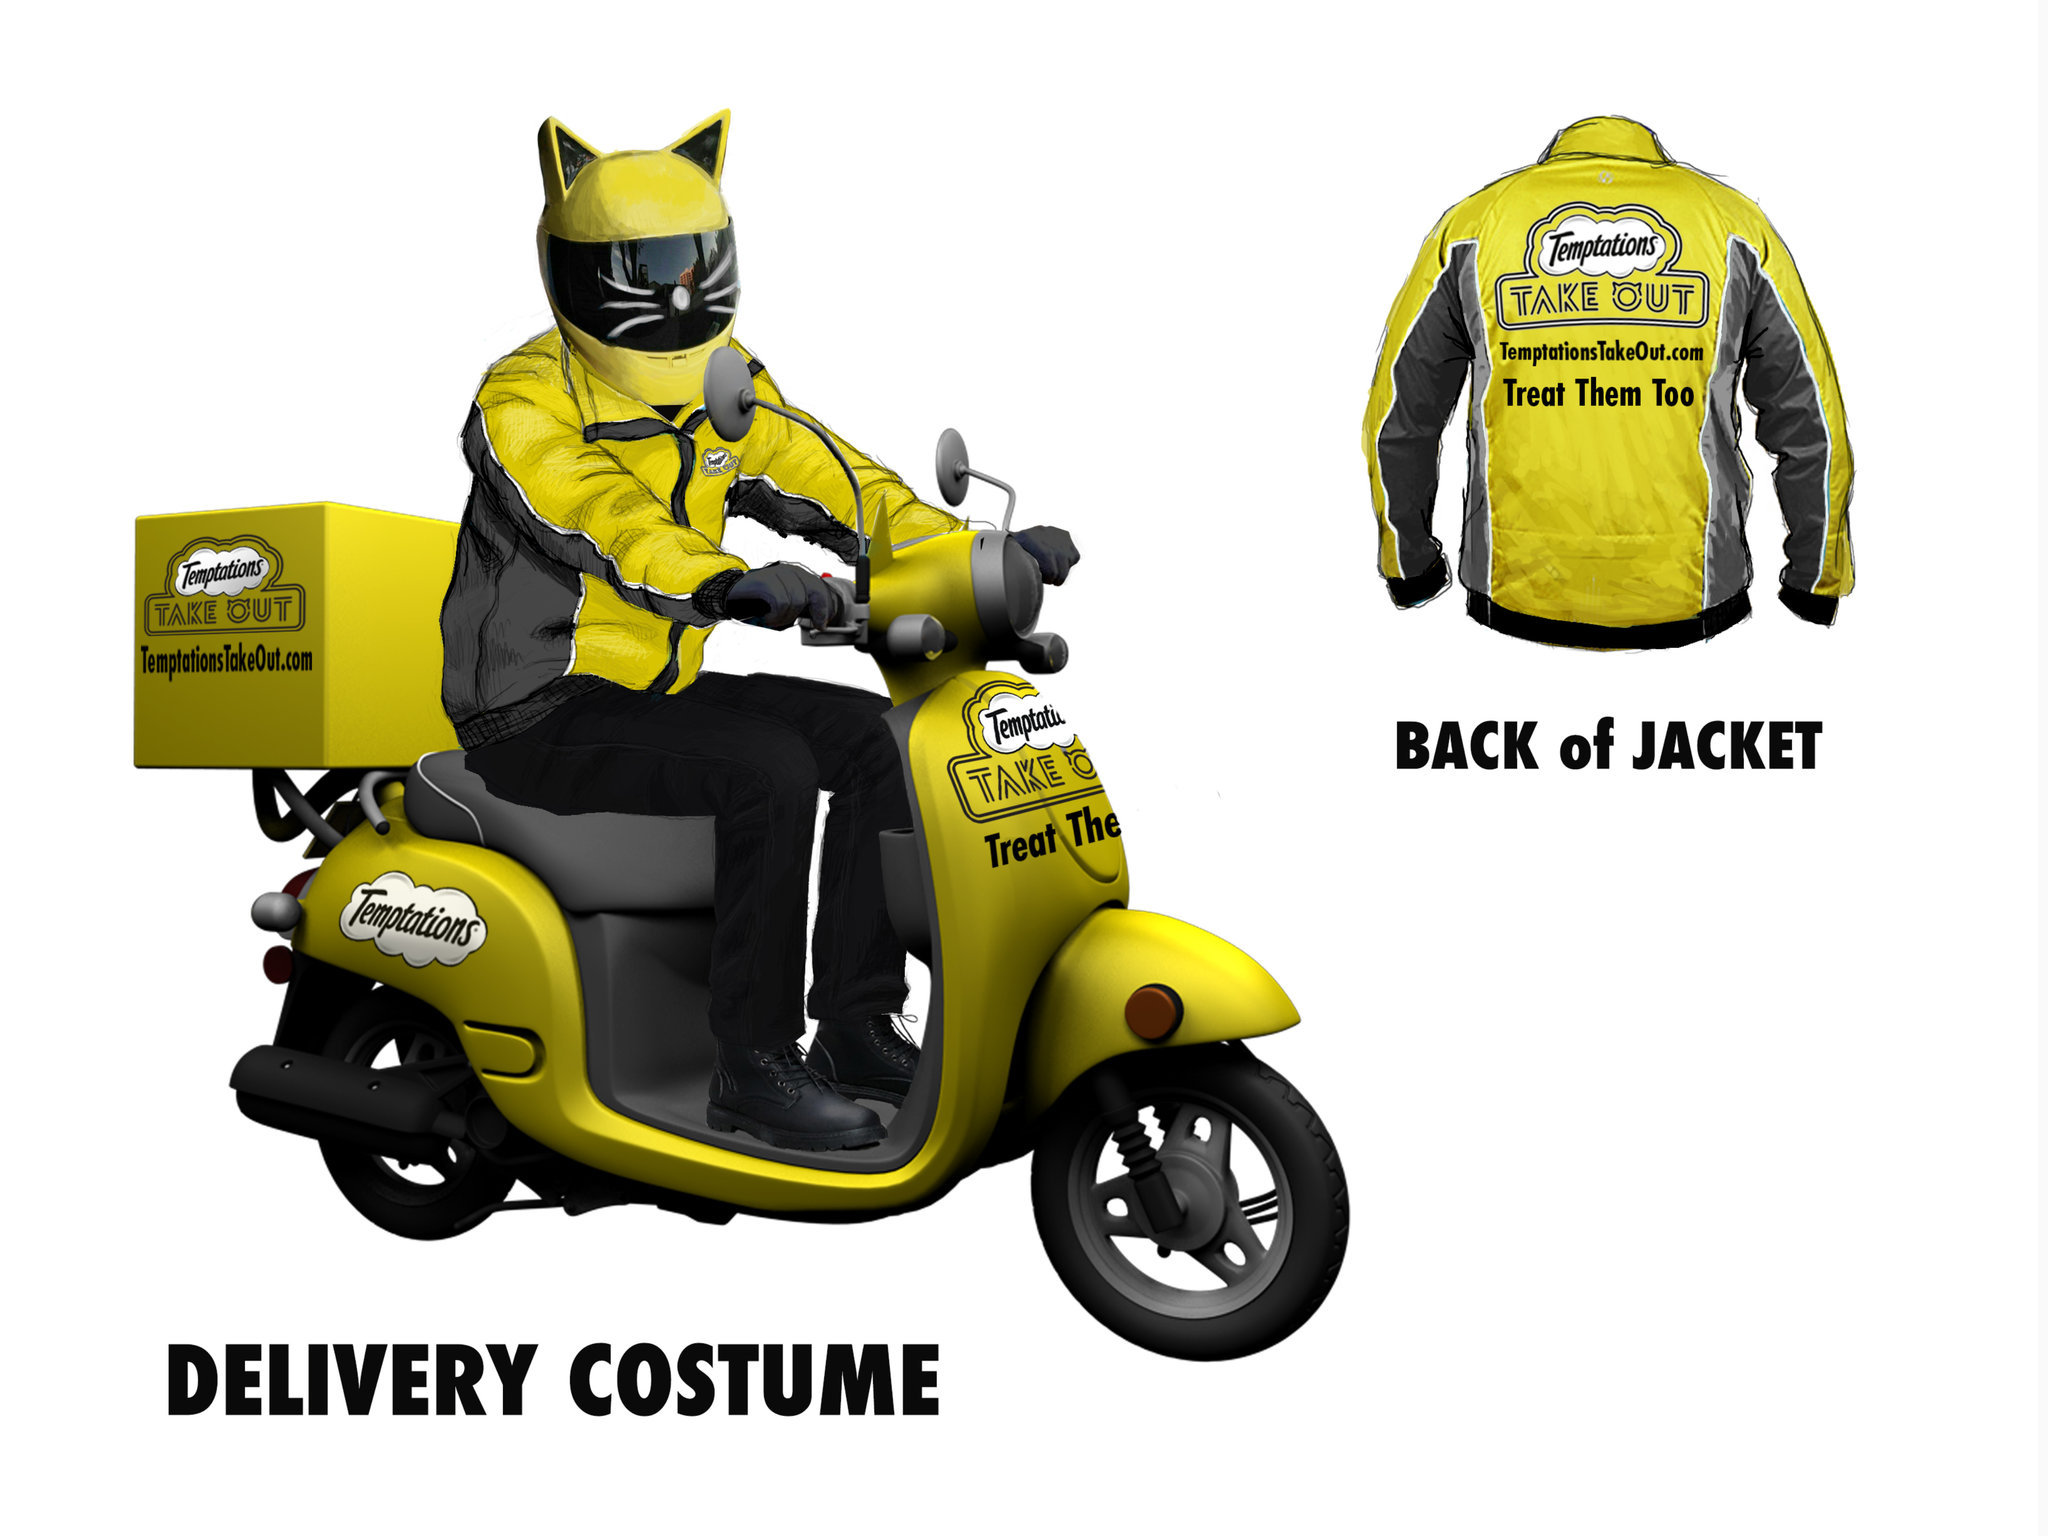 Delivery Costume.jpg